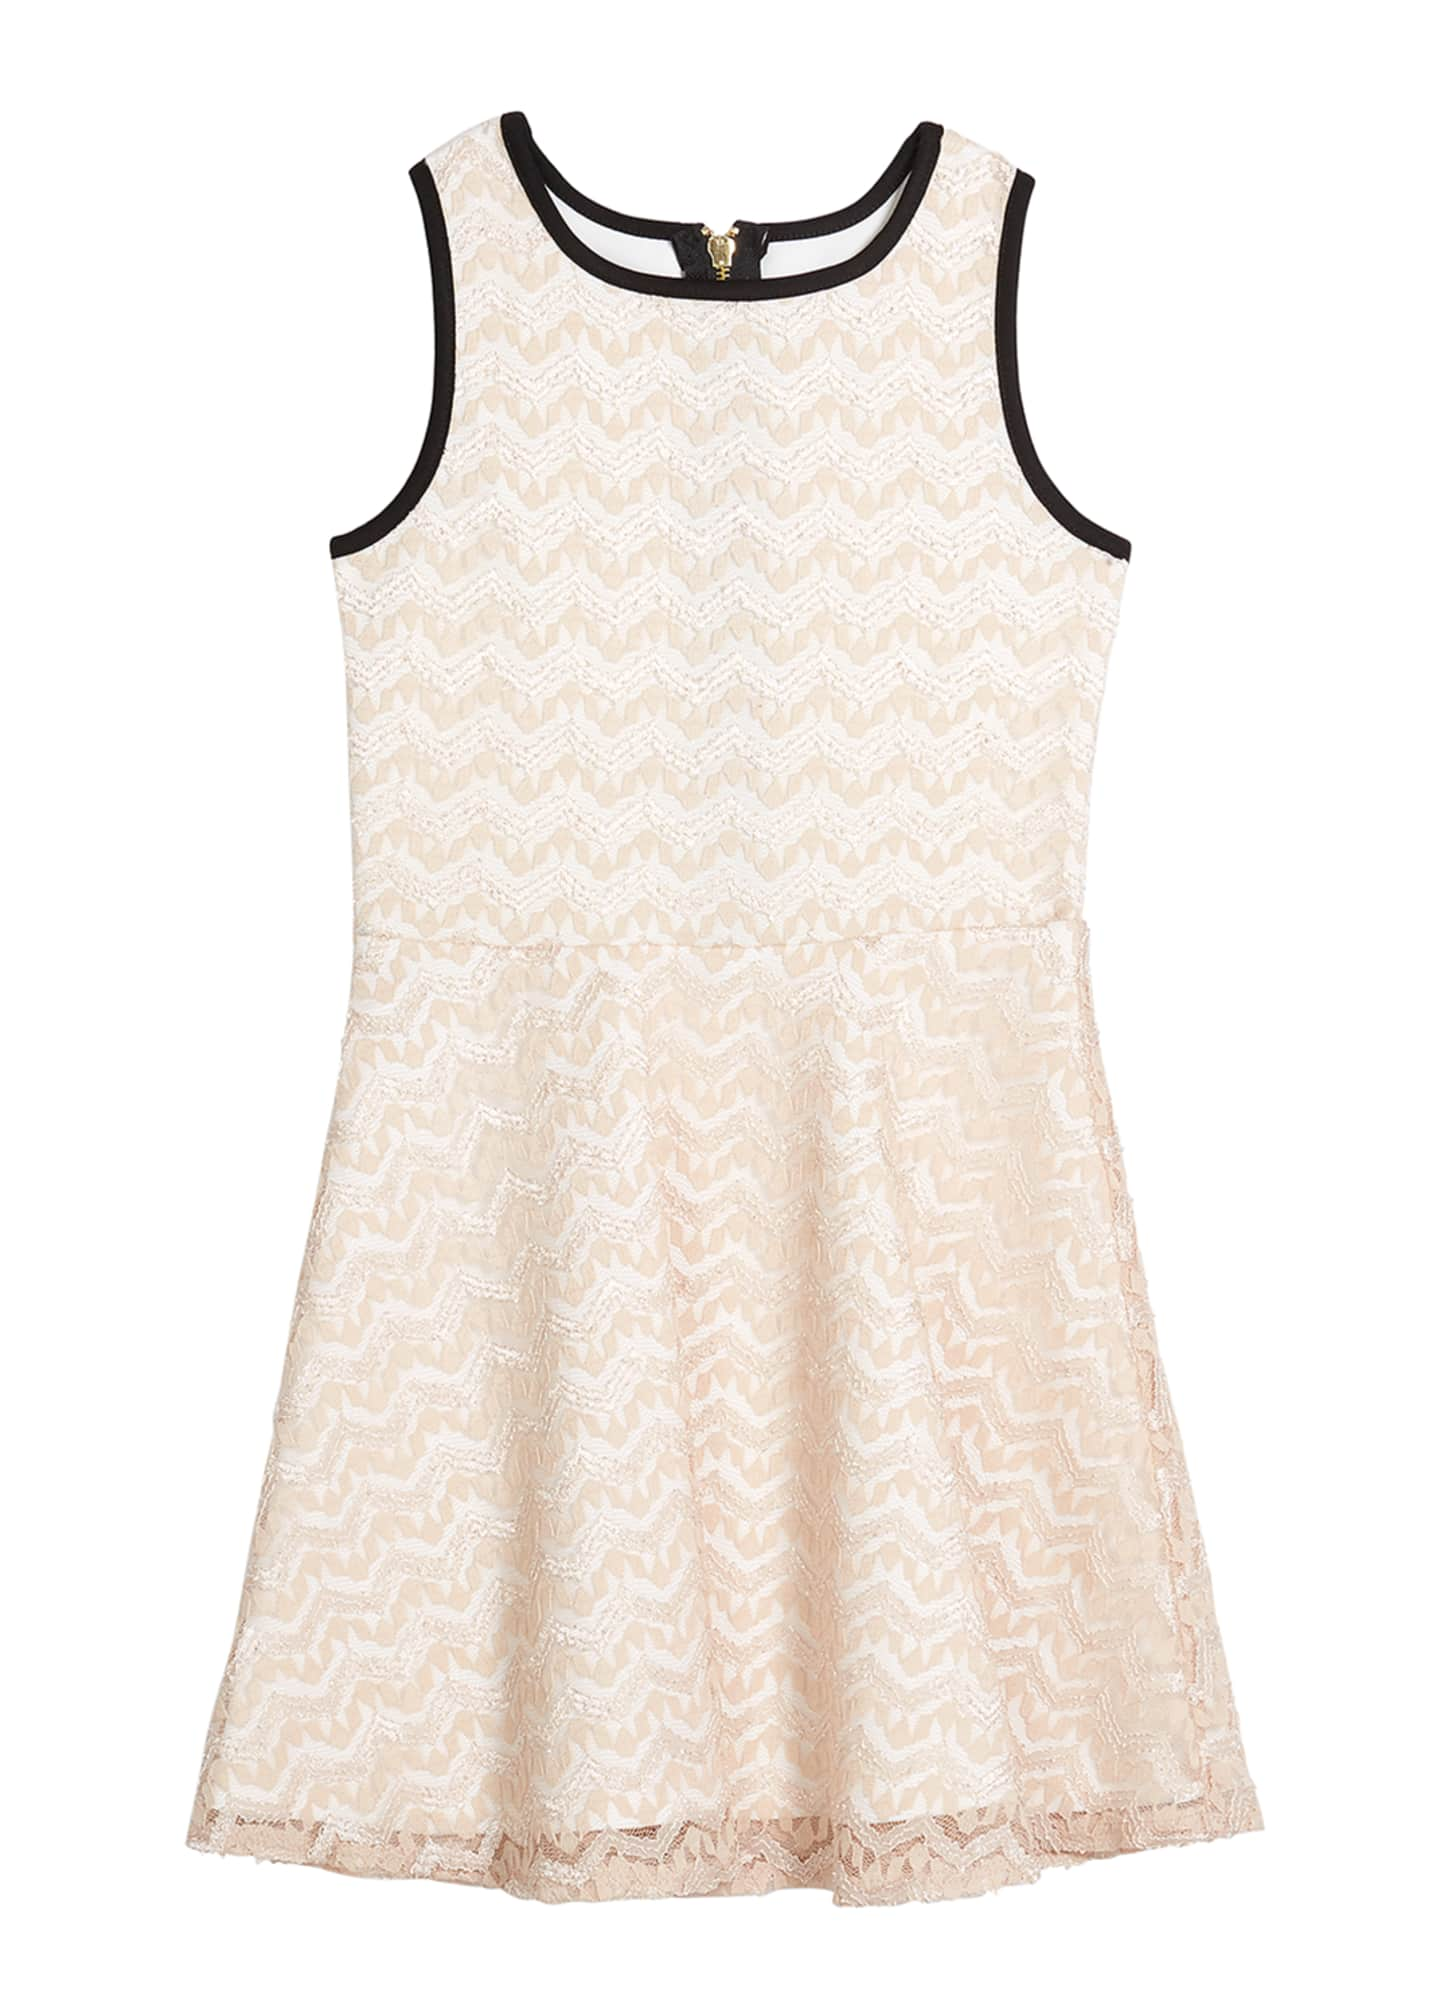 Sally Miller Girl's The Luna Lace Dress, Size